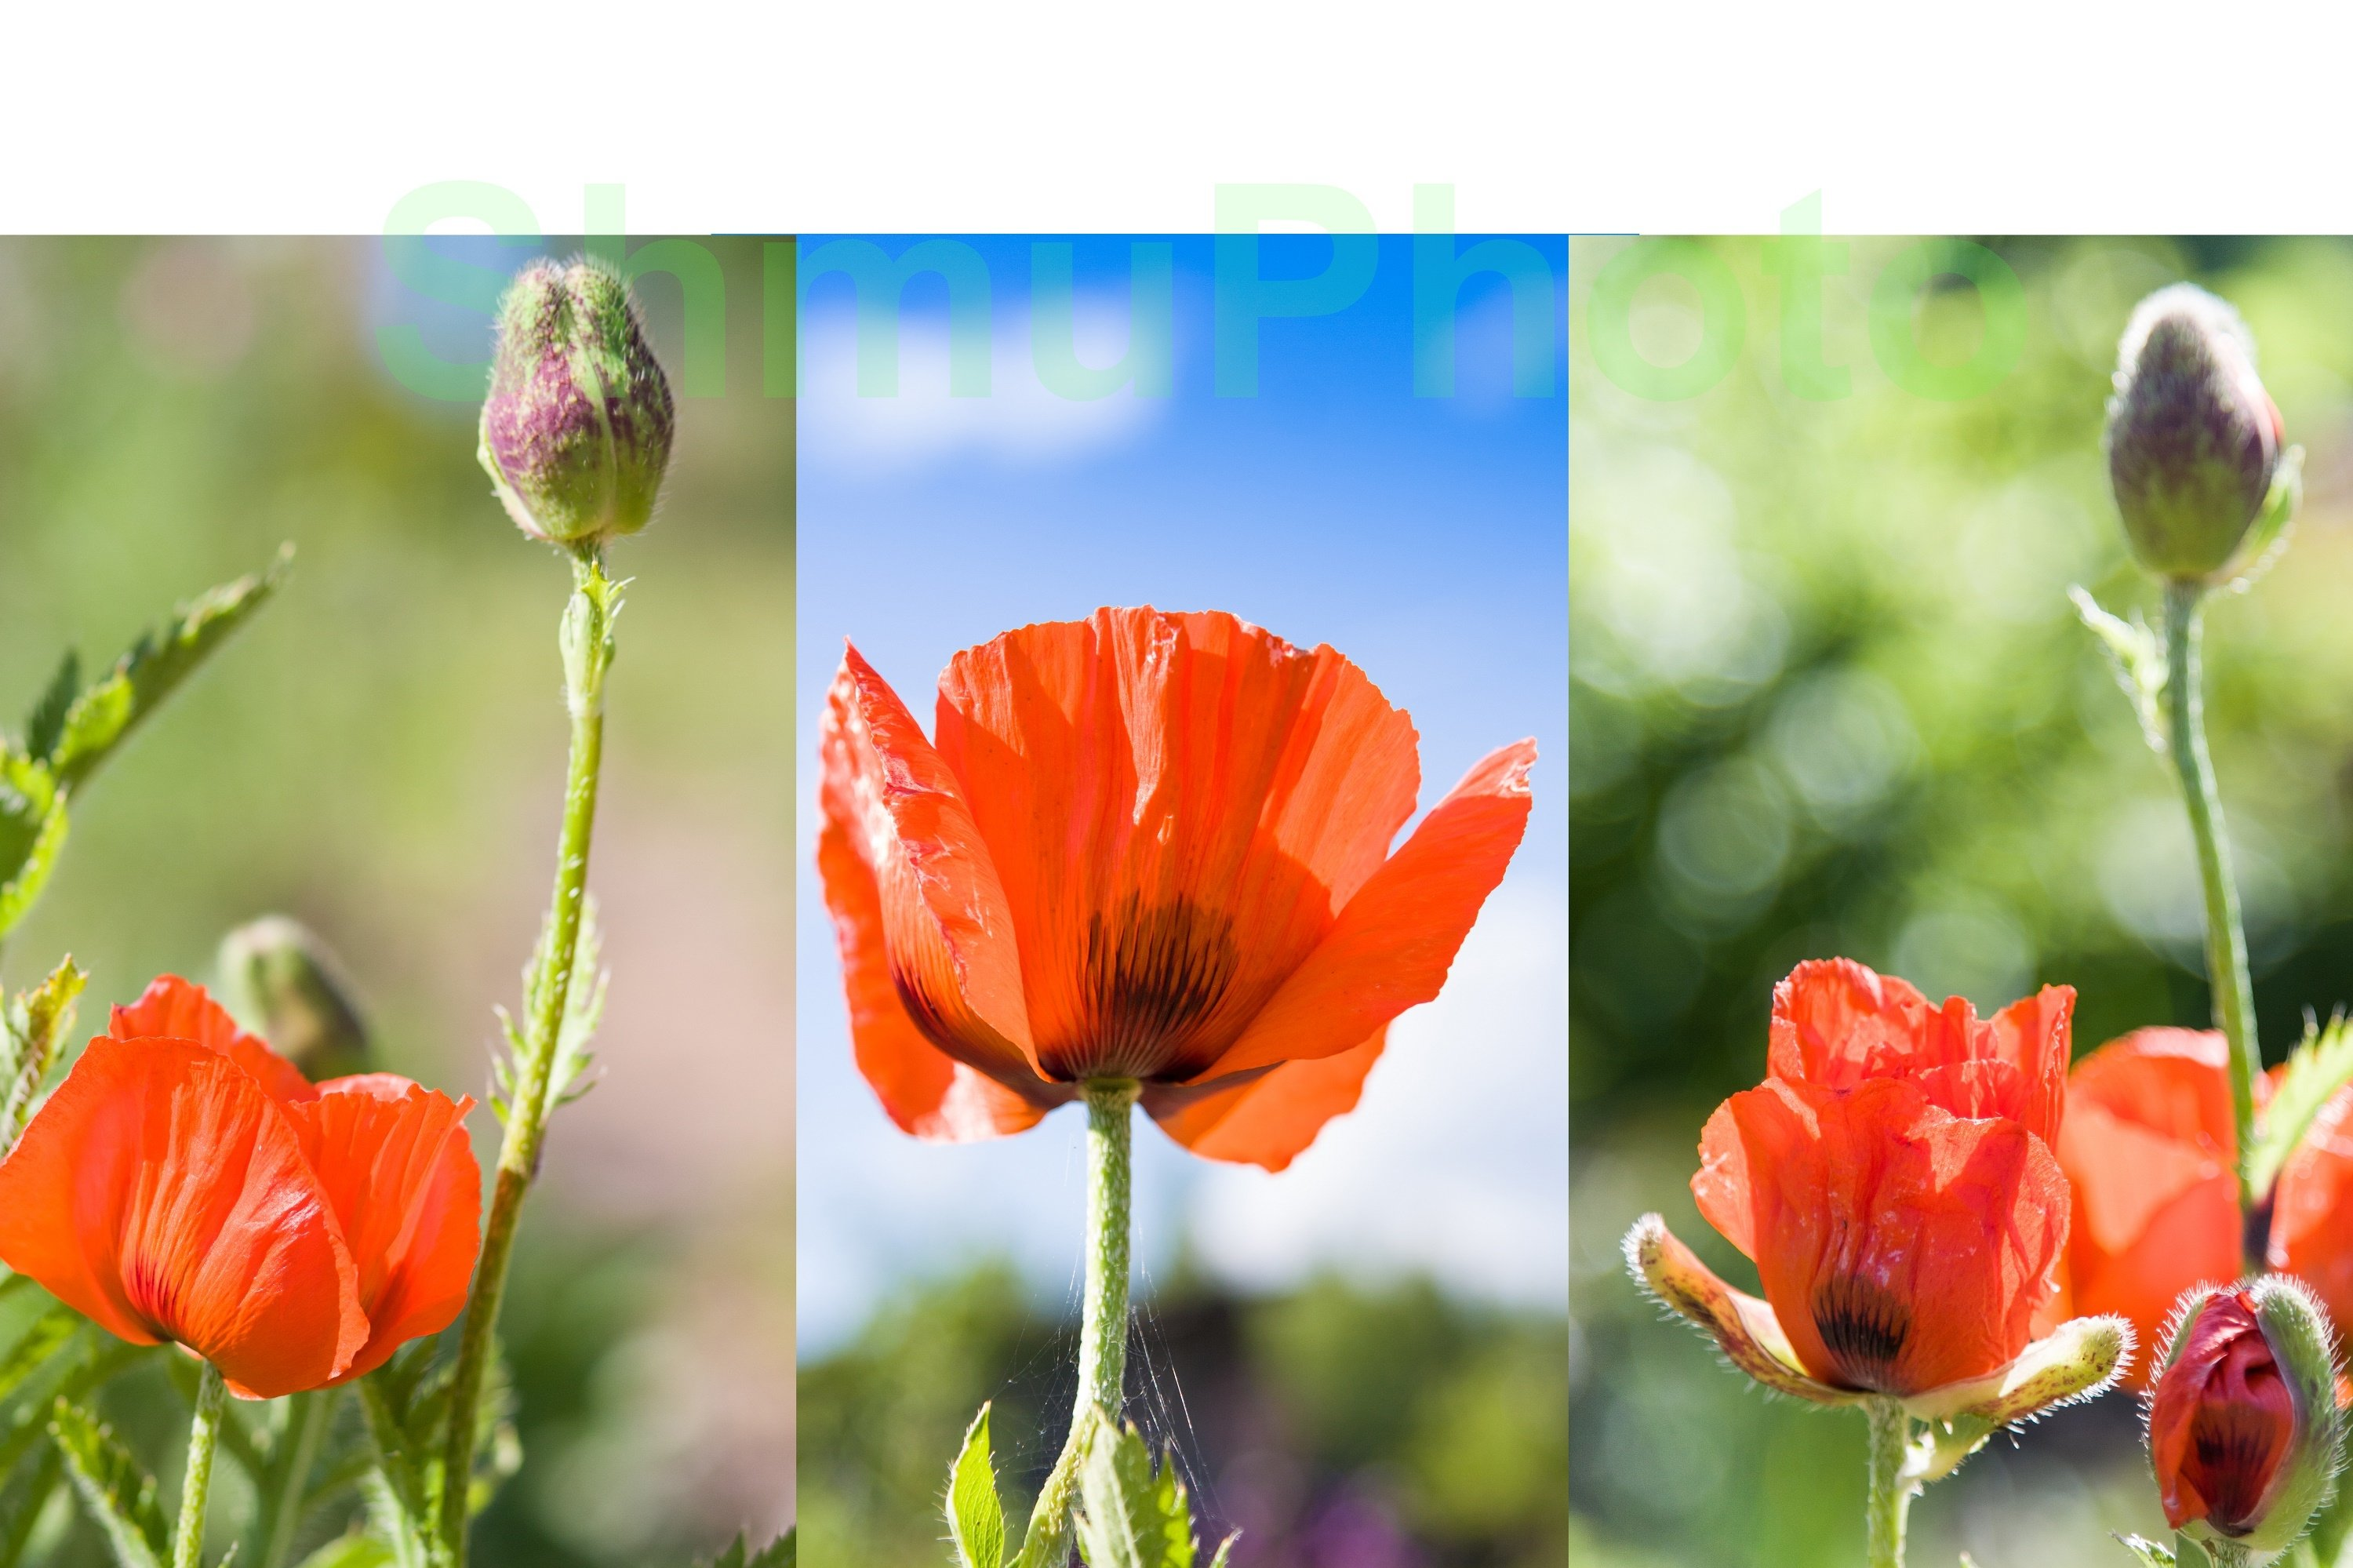 Red poppies Papaver somniferum in summer example image 1